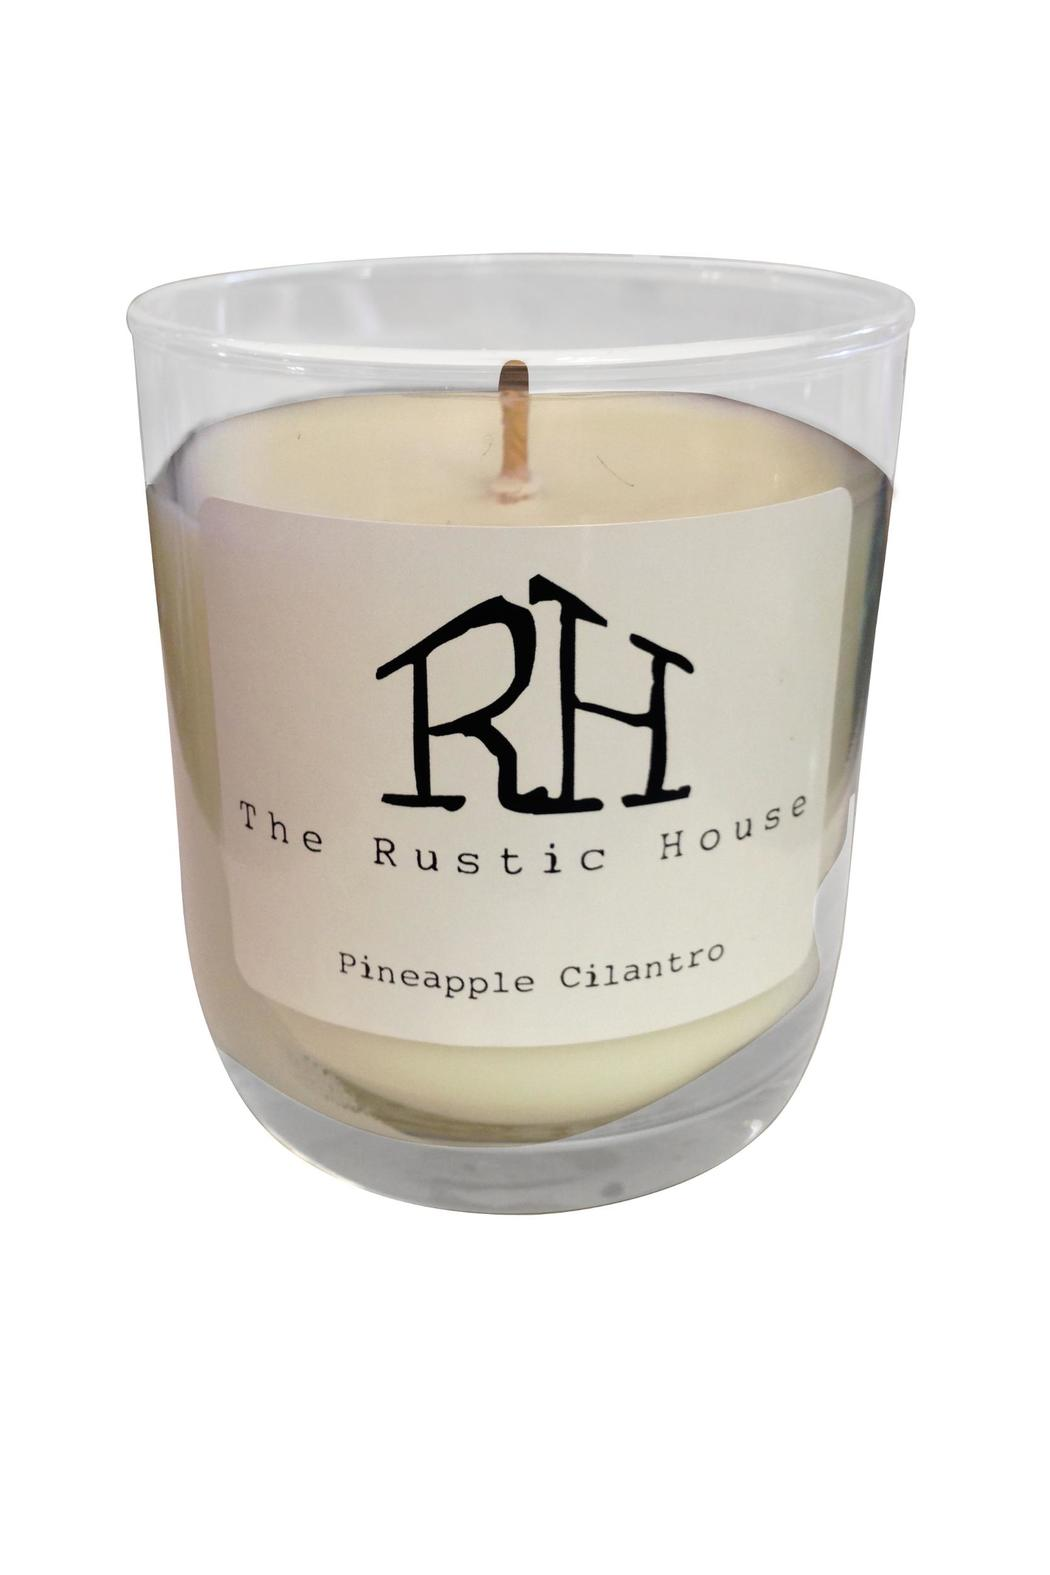 Rustic house pineapple cilantro candle from woodstock by for Rustic house candles